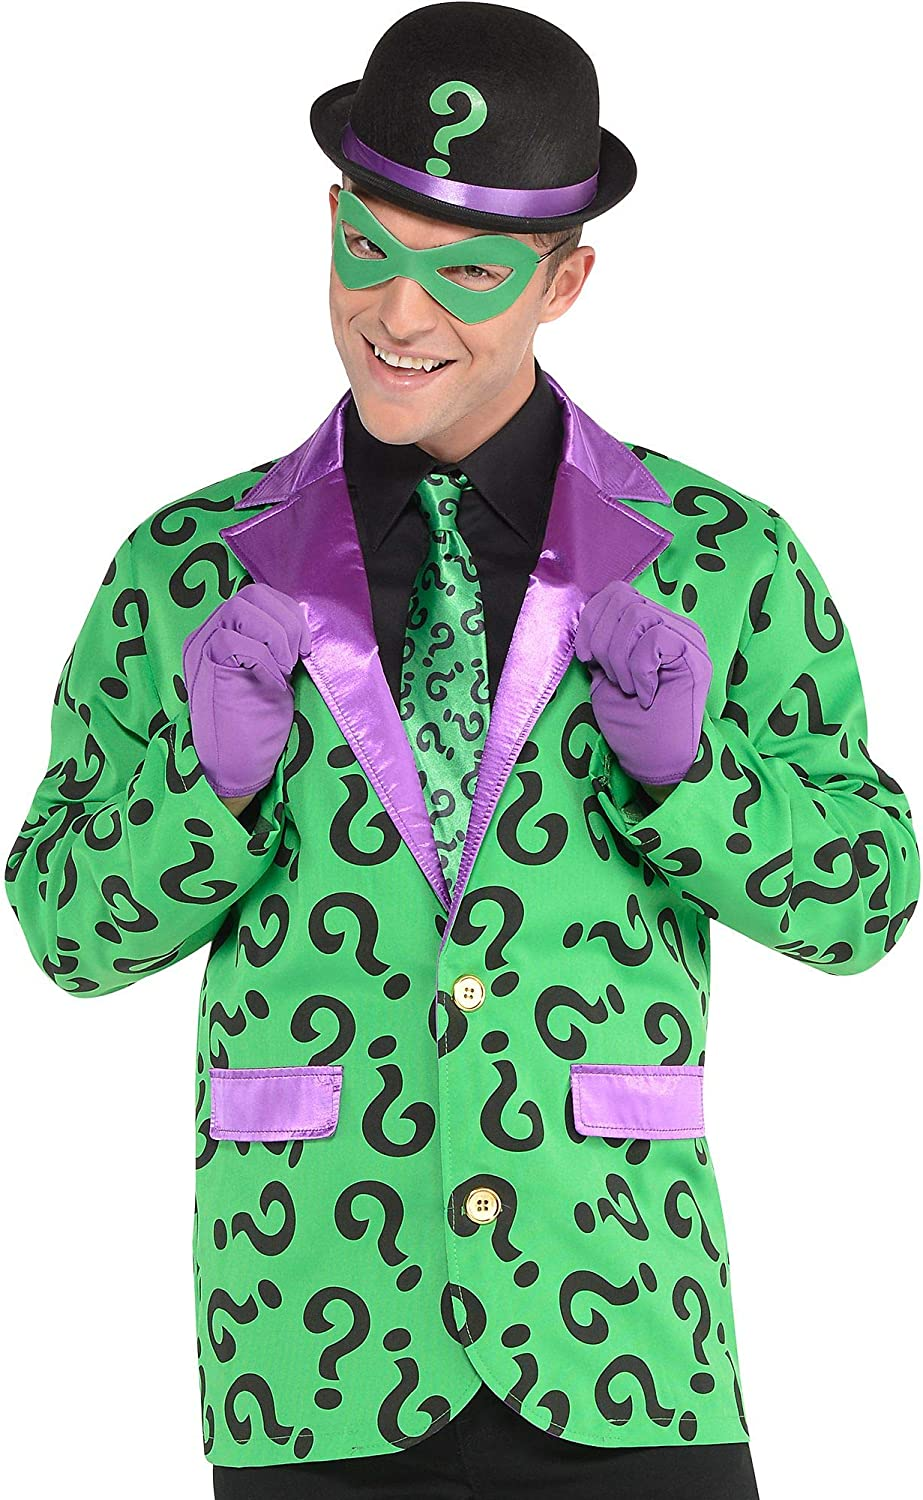 Suit Yourself Riddler Costume Accessory Kit for Adults, Batman Villain, One Size, Includes Hat, Tie, Gloves and Mask